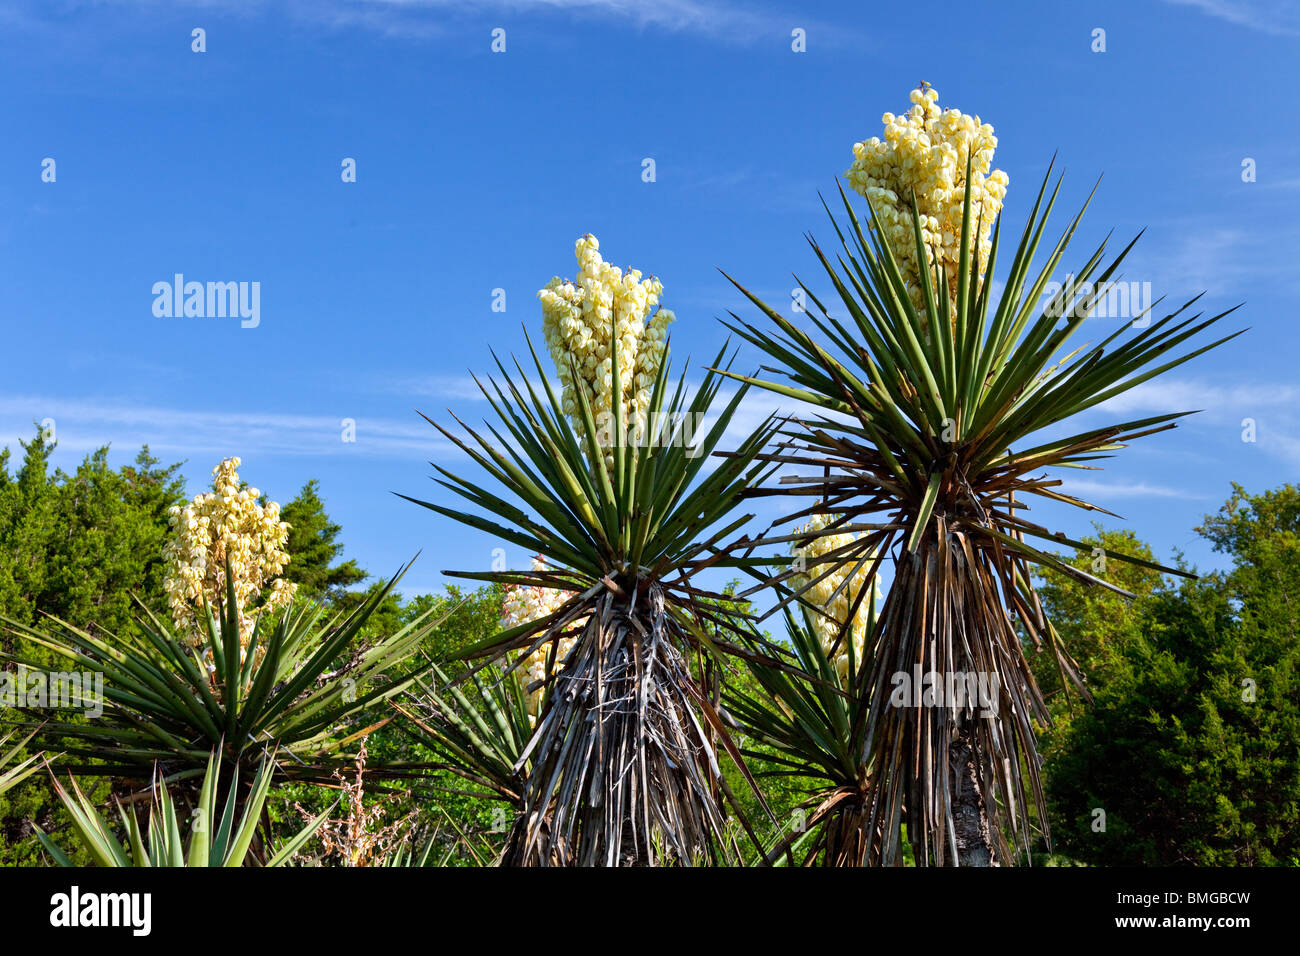 Yucca plants bloom in rural Texas hill country, USA. - Stock Image